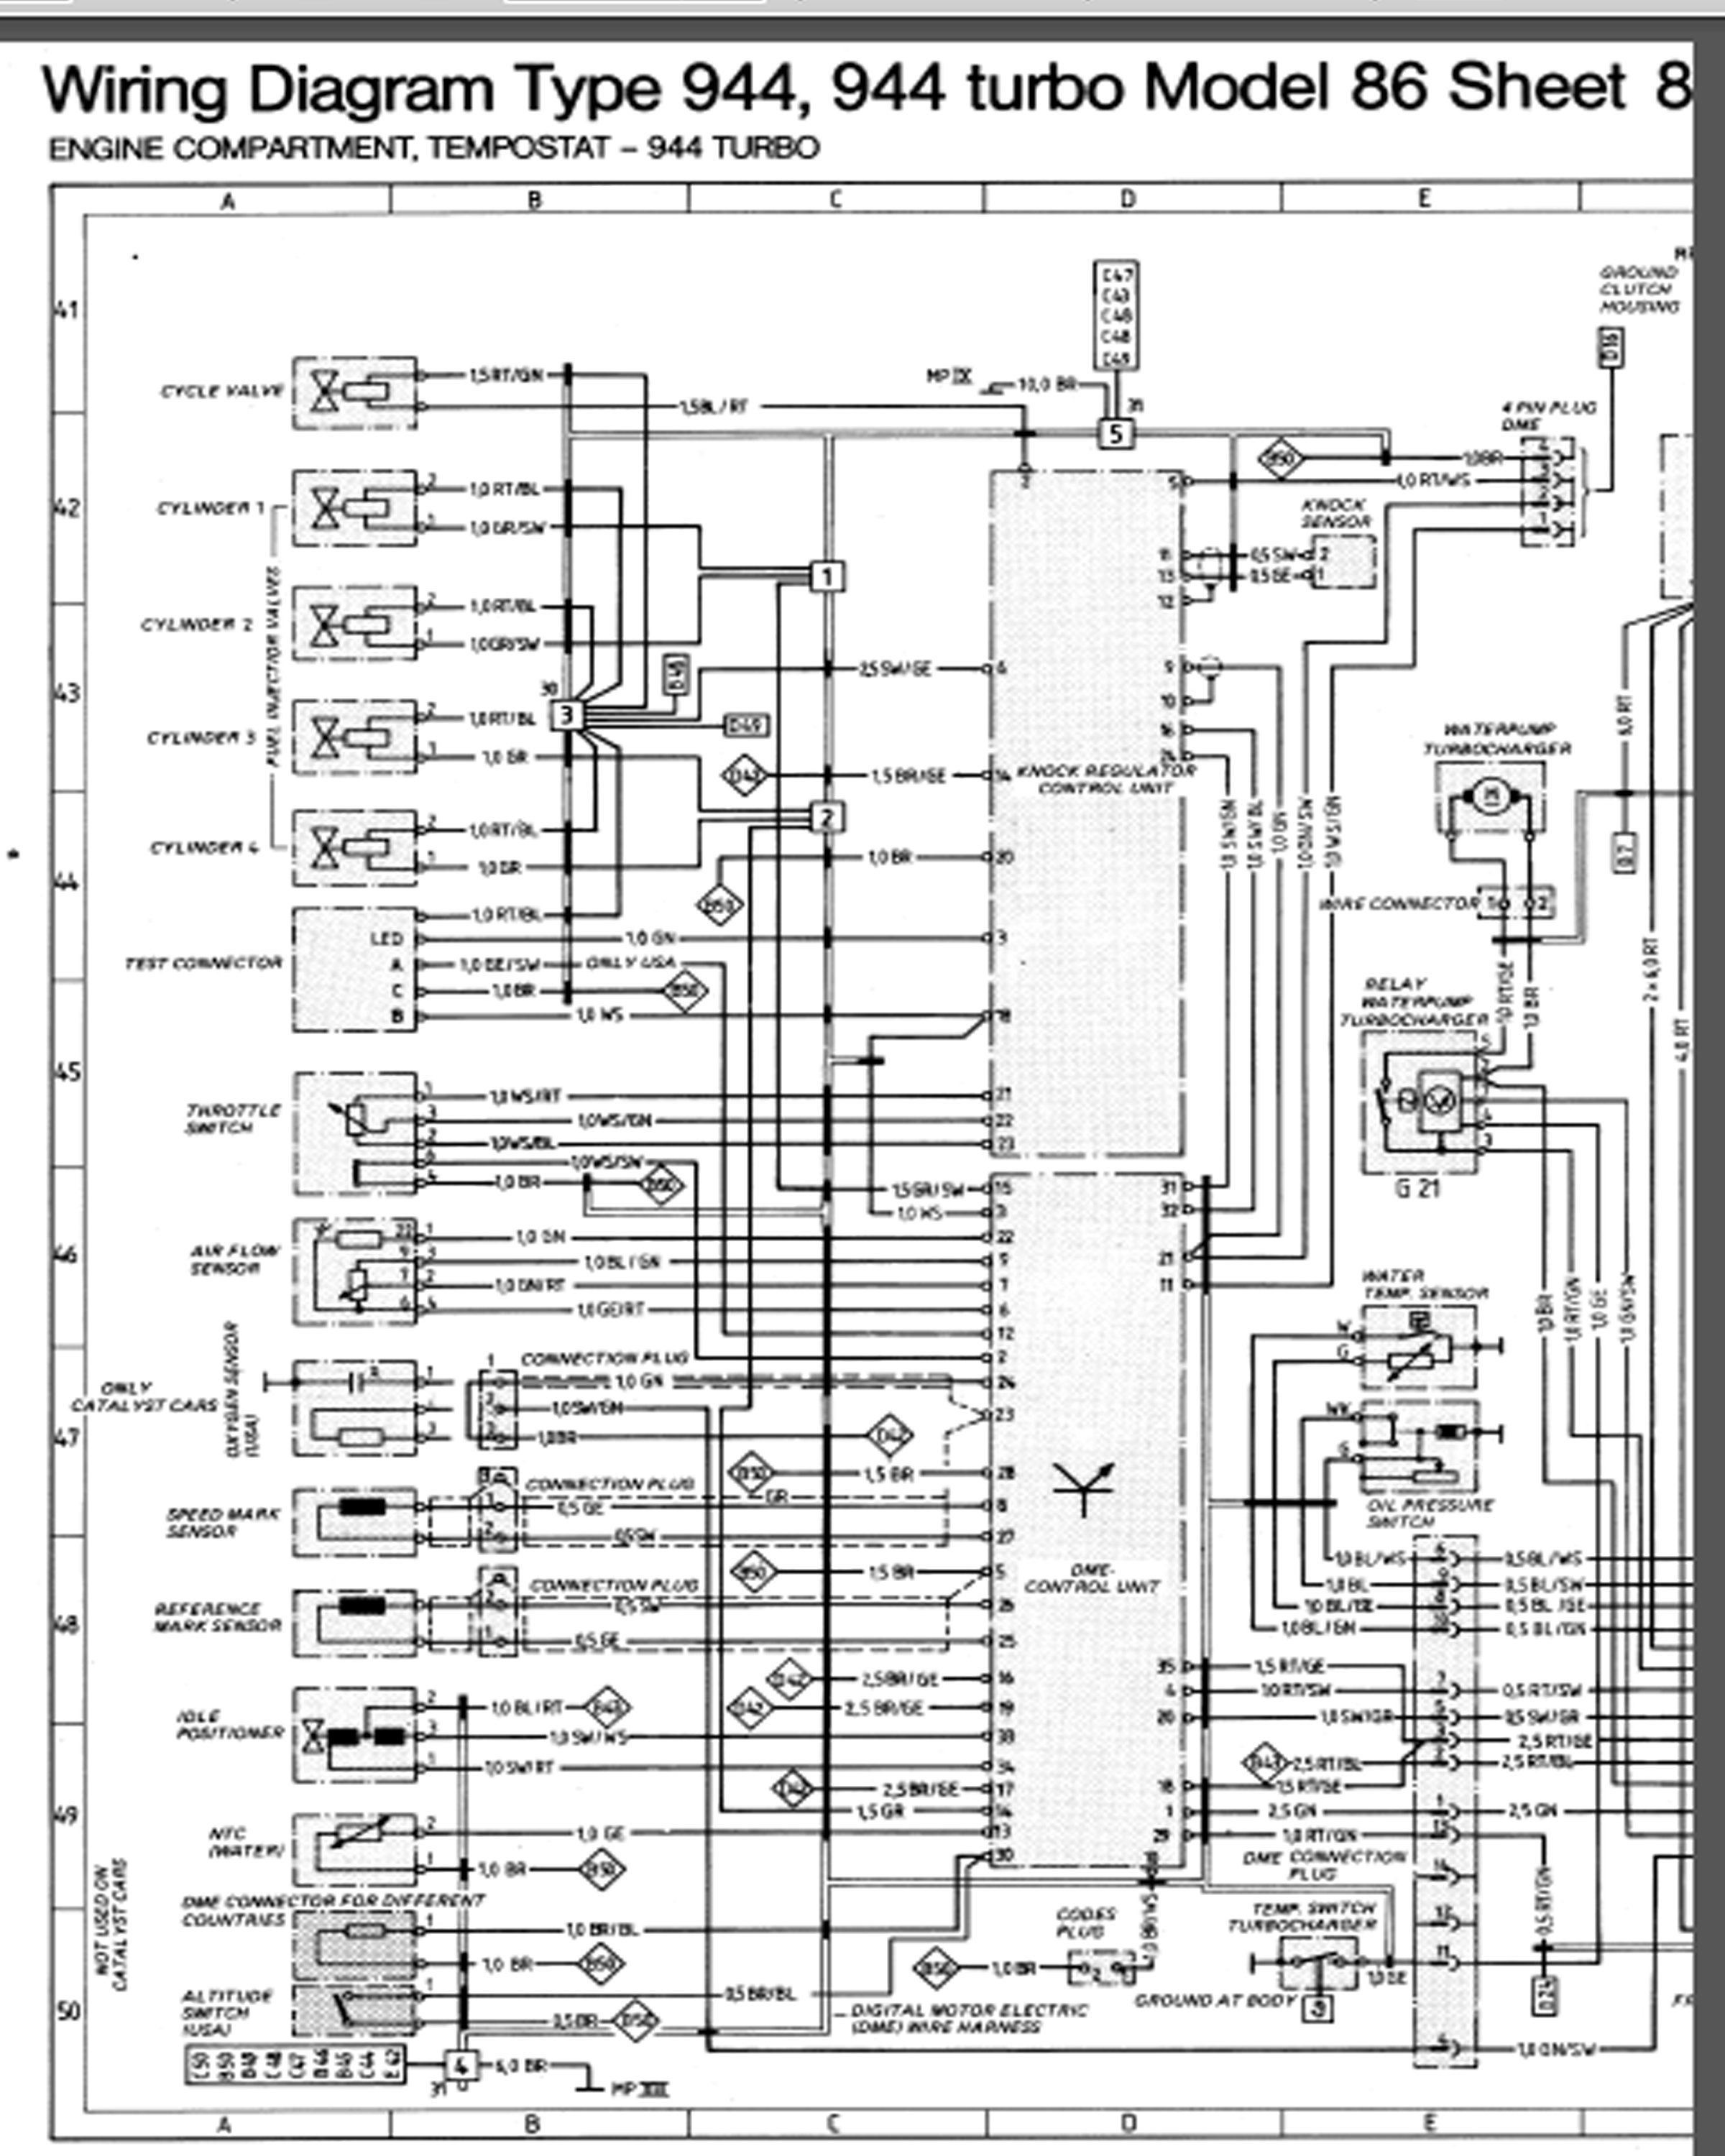 2012 01 18_173958_96_944_turbo_wiring_page_1 porsche wiring diagrams 944 porsche wiring diagrams instruction porsche 944 wiring diagram at virtualis.co